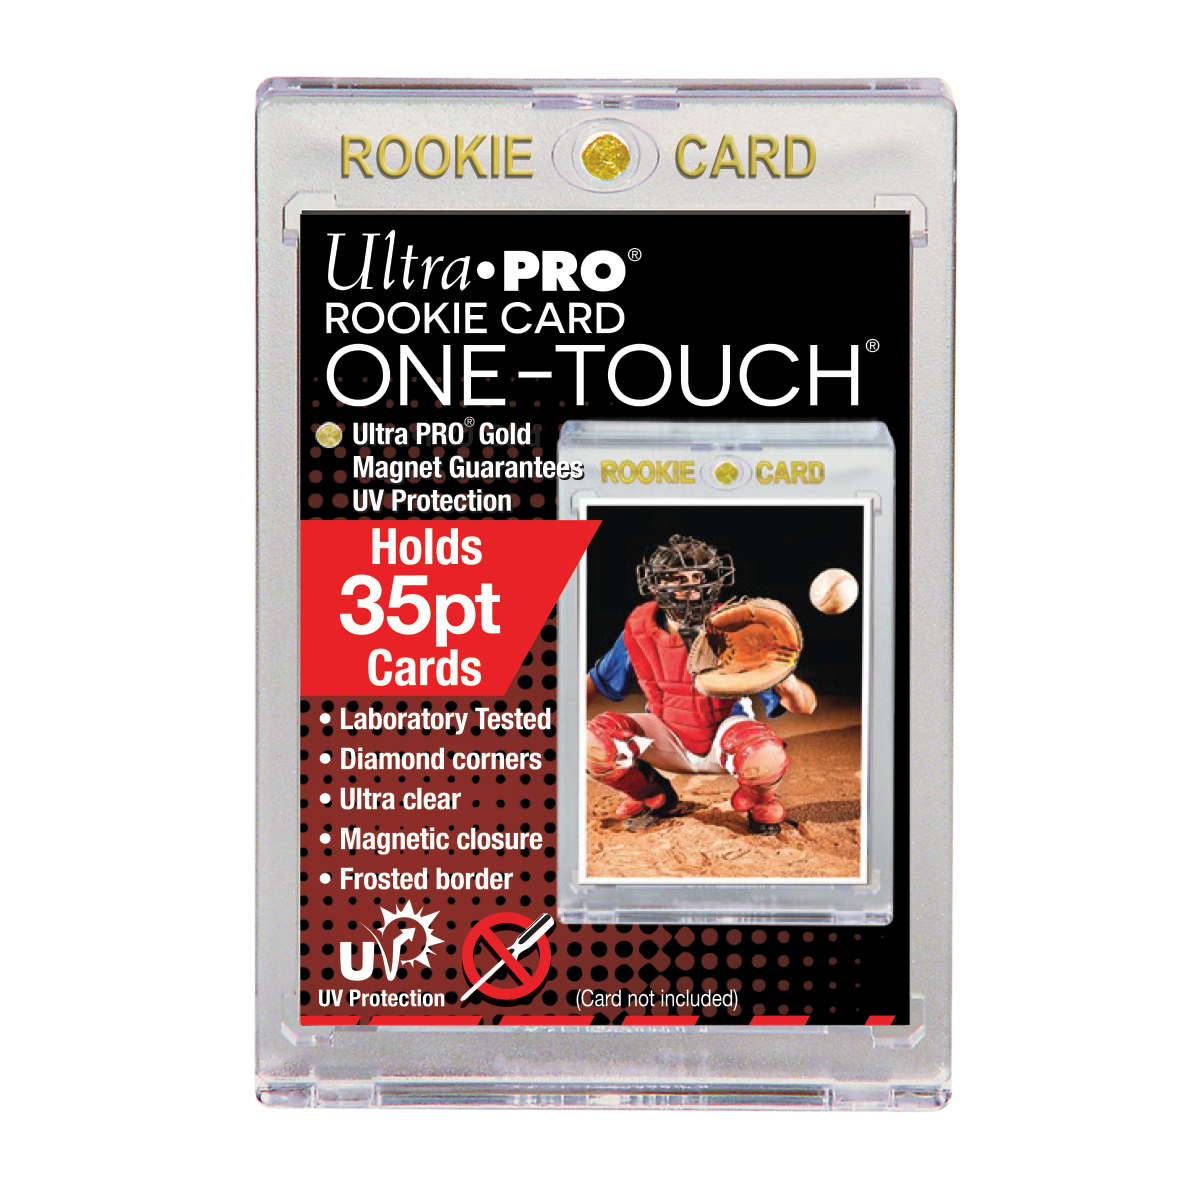 One Touch Rookie 35pt Uv Magnetic Holder Box Front